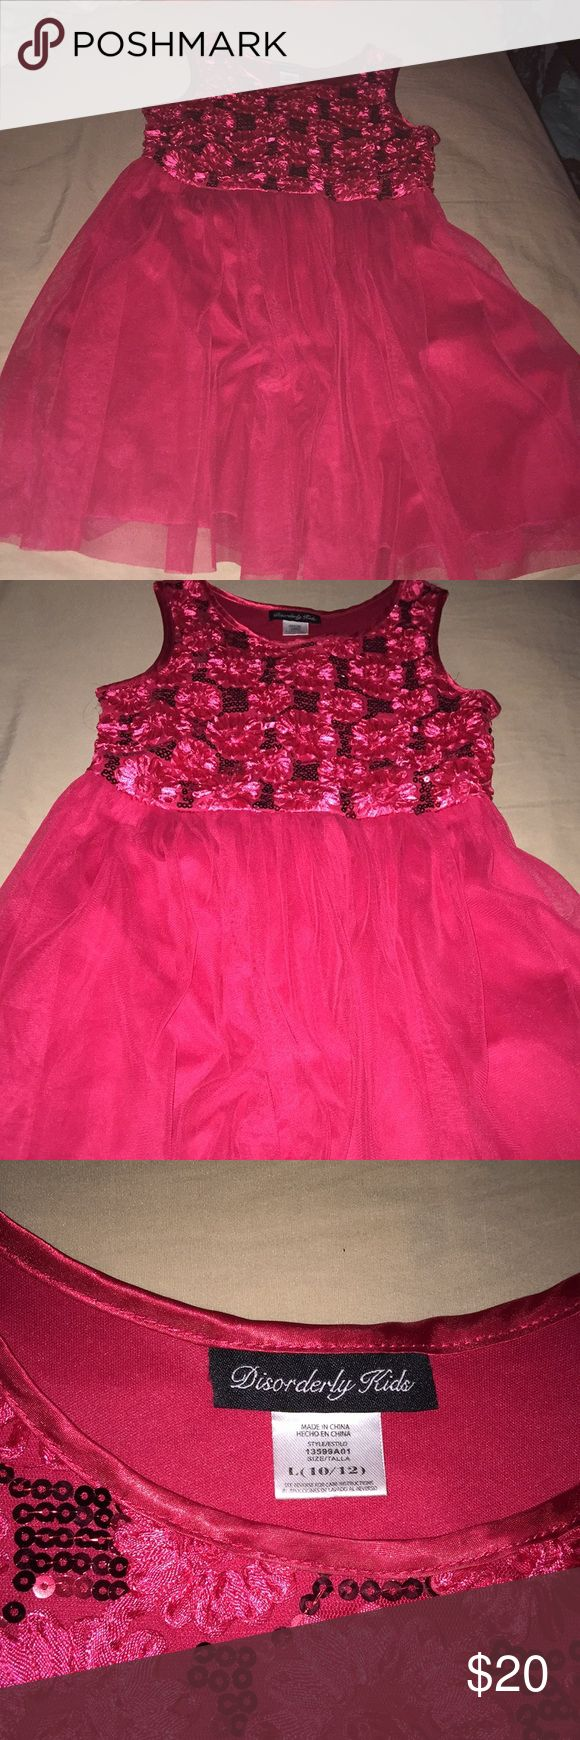 Beautiful Little Girls Dress Size 10-12 This is a beautiful little girl's dress. It's a gorgeous red, sleeveless, with beautiful sequin detailing. It has a flowy, princess bottom. In great condition and from a smoke free pet free home. Disorderly Kids Dresses Formal